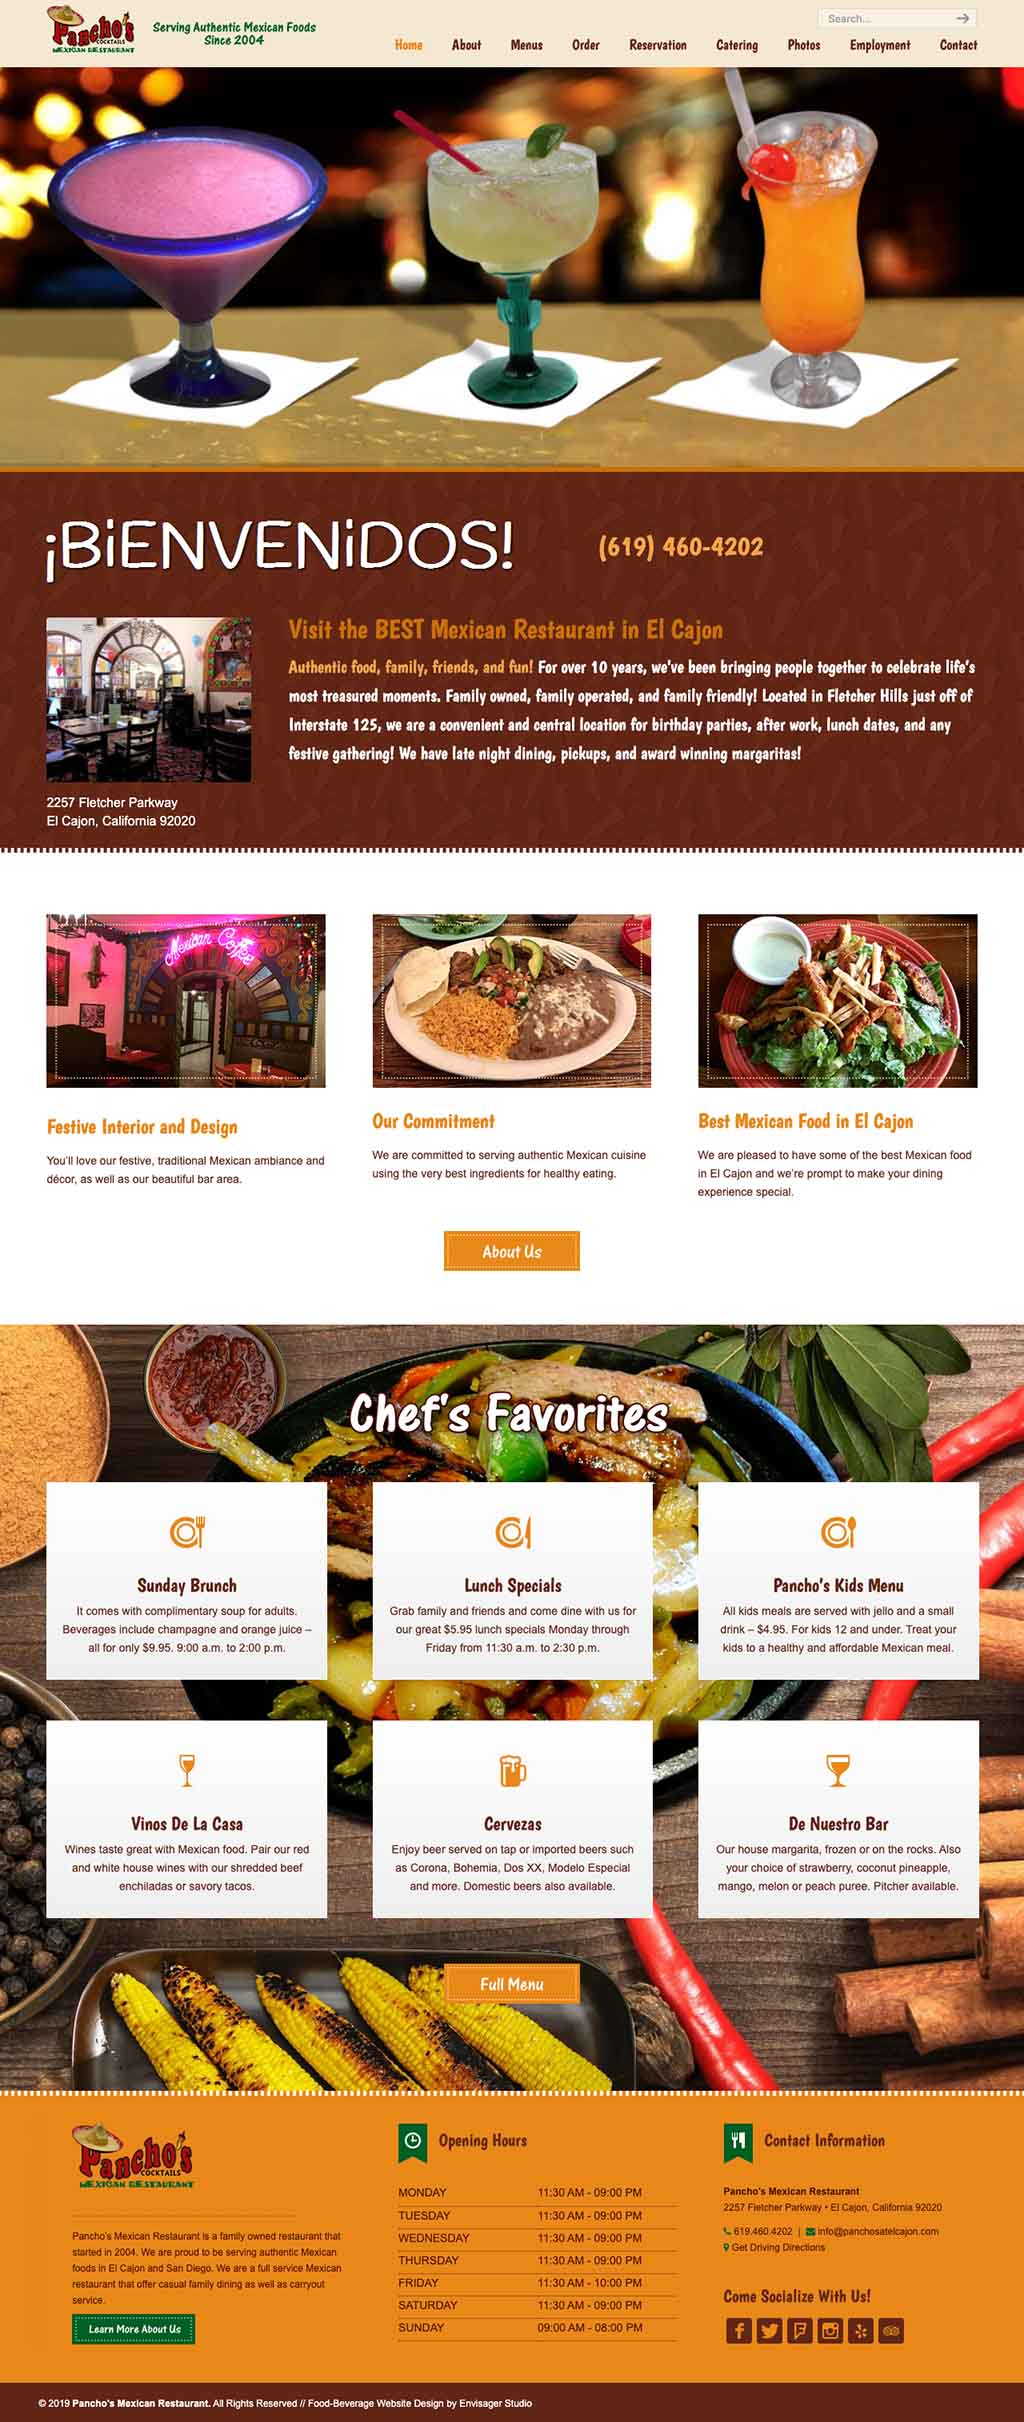 Pancho's Mexican Restaurant Website Design